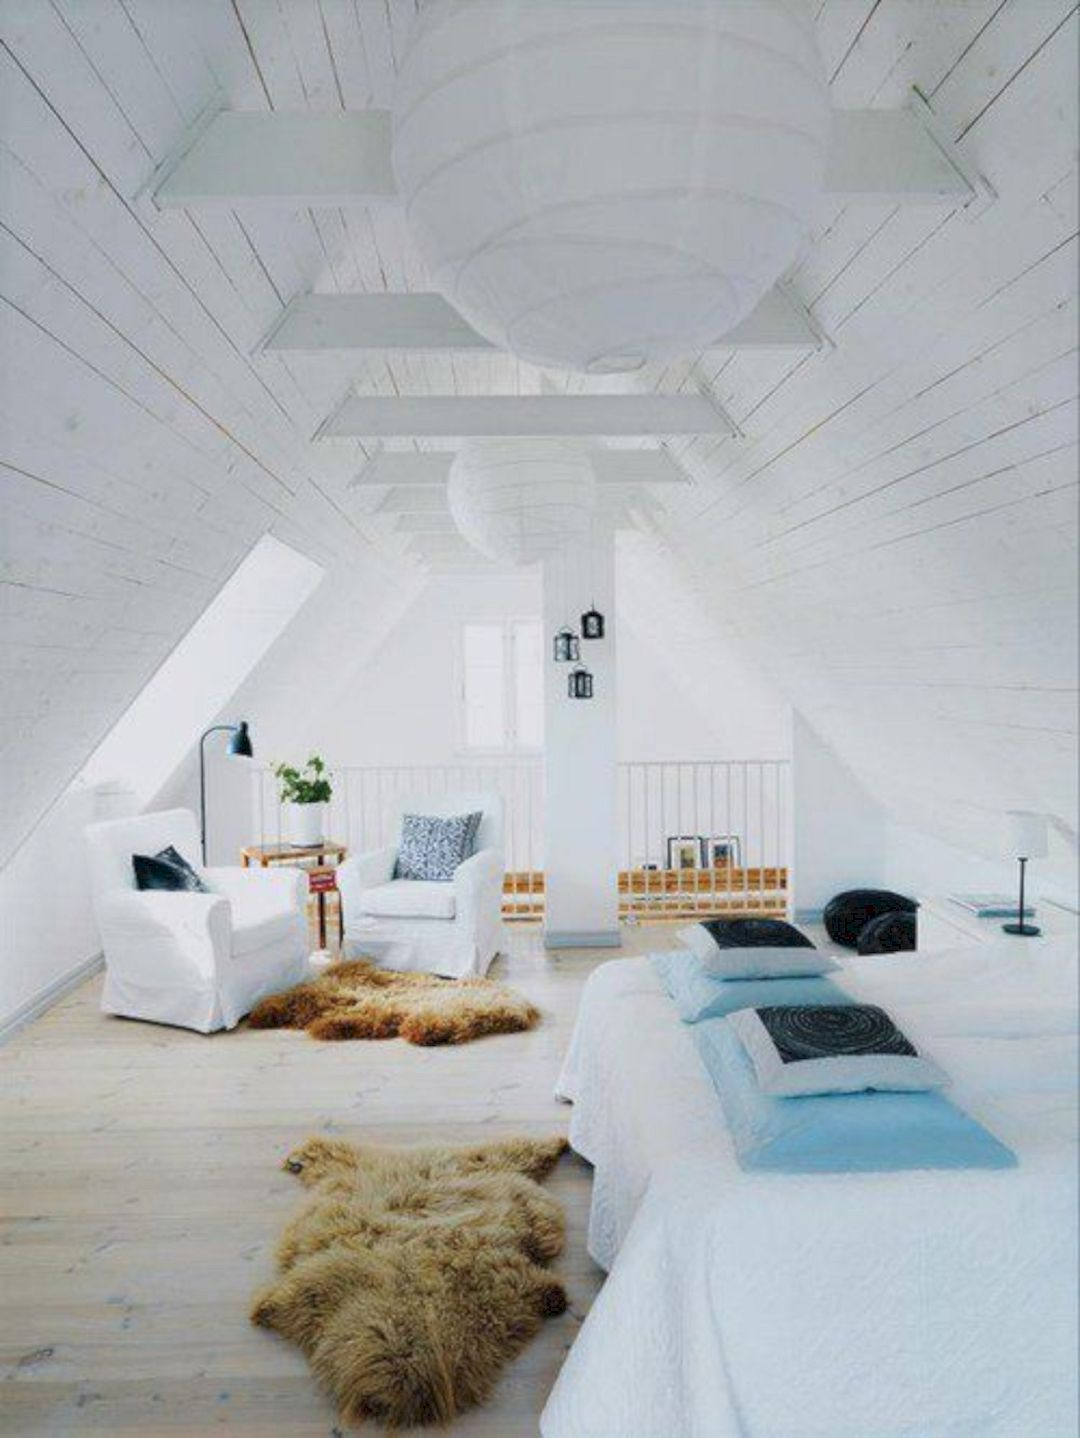 16 Stunning Attic Renovation Ideas | Gorgeous Interior Ideas | Small on beautiful contemporary bedrooms, cozy country bedrooms, dream bedrooms, decorating with knotty pine walls, big fancy bedrooms, chic and cozy bedrooms, teen girl bedrooms, animal print bedrooms, tumblr boy bedrooms, different themes for bedrooms, most beautiful bedrooms, renovating attics into bedrooms, fancy cool teenage girl bedrooms, nice bedrooms, basement bedrooms, painted dormer bedrooms, cool teenage boy bedrooms, loft bedrooms, little girls bedrooms, house in cape cod upstairs bedrooms,